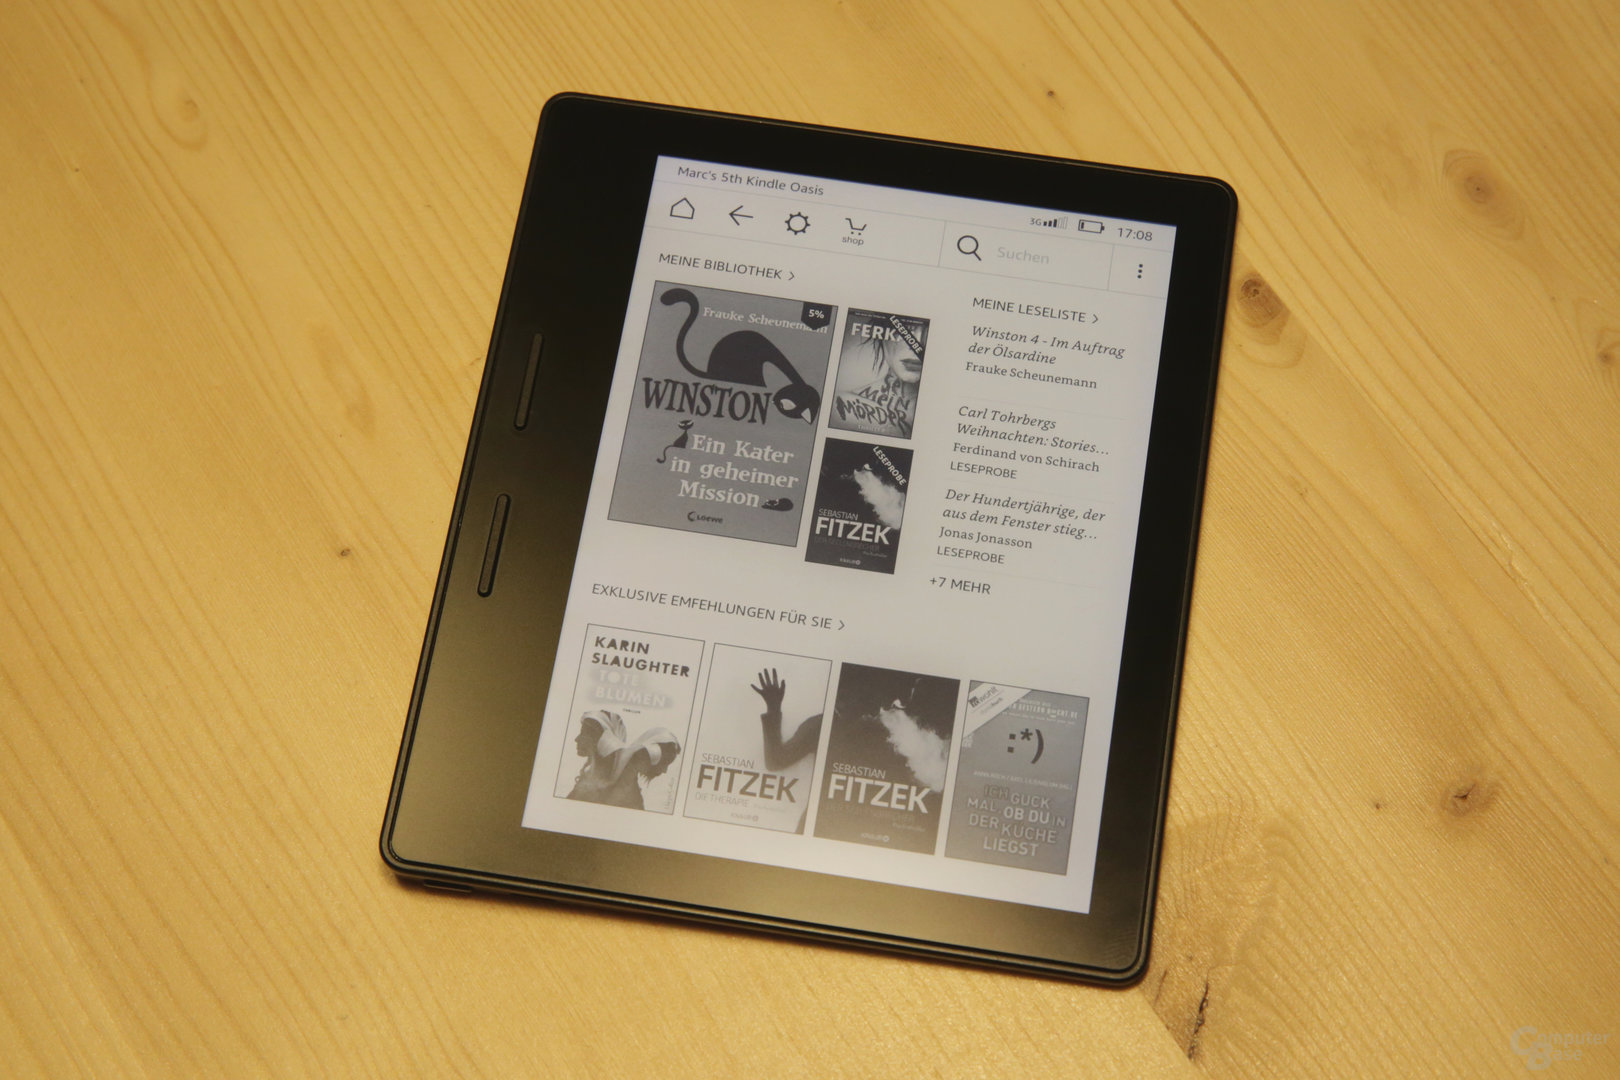 Amazon verspricht das bisher hellste Kindle-Display